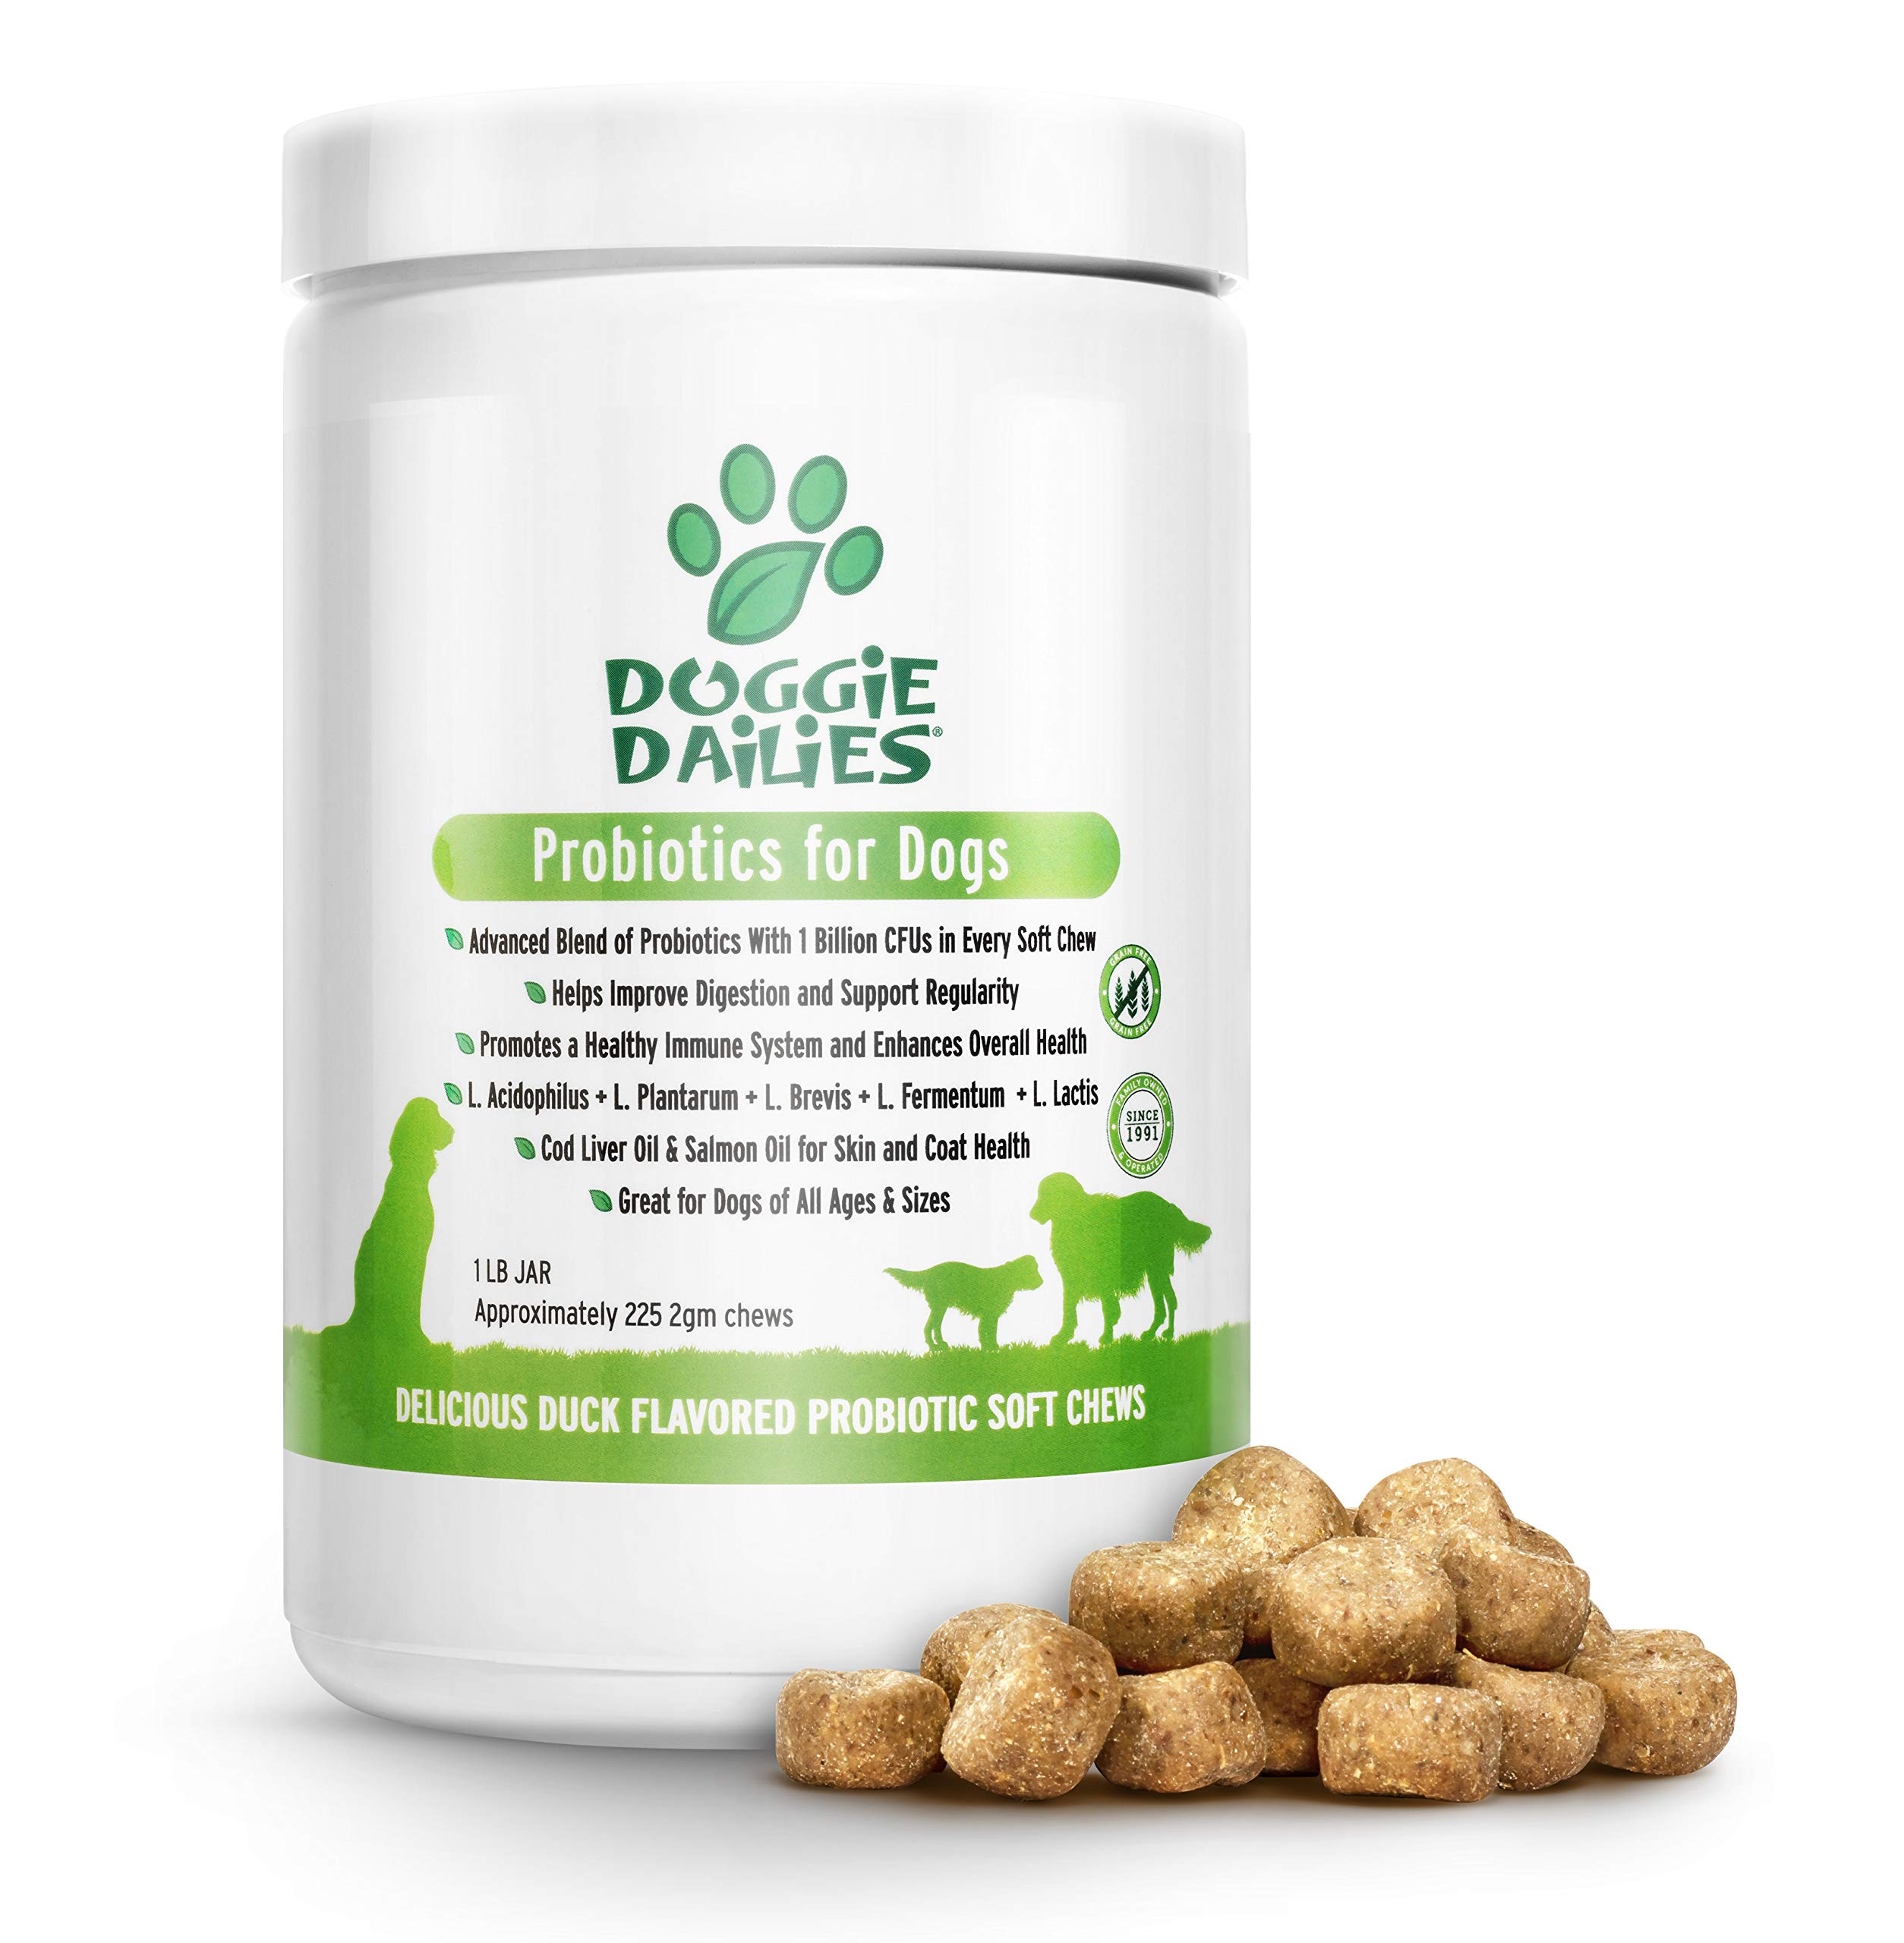 Doggie Dailies Probiotics for Dogs, 225 Soft Chews, Advanced Dog Probiotics with Prebiotics, Relieves Dog Diarrhea, Improves Digestion, Enhances Immune System, Improves Overall Health (Duck) by Doggie Dailies